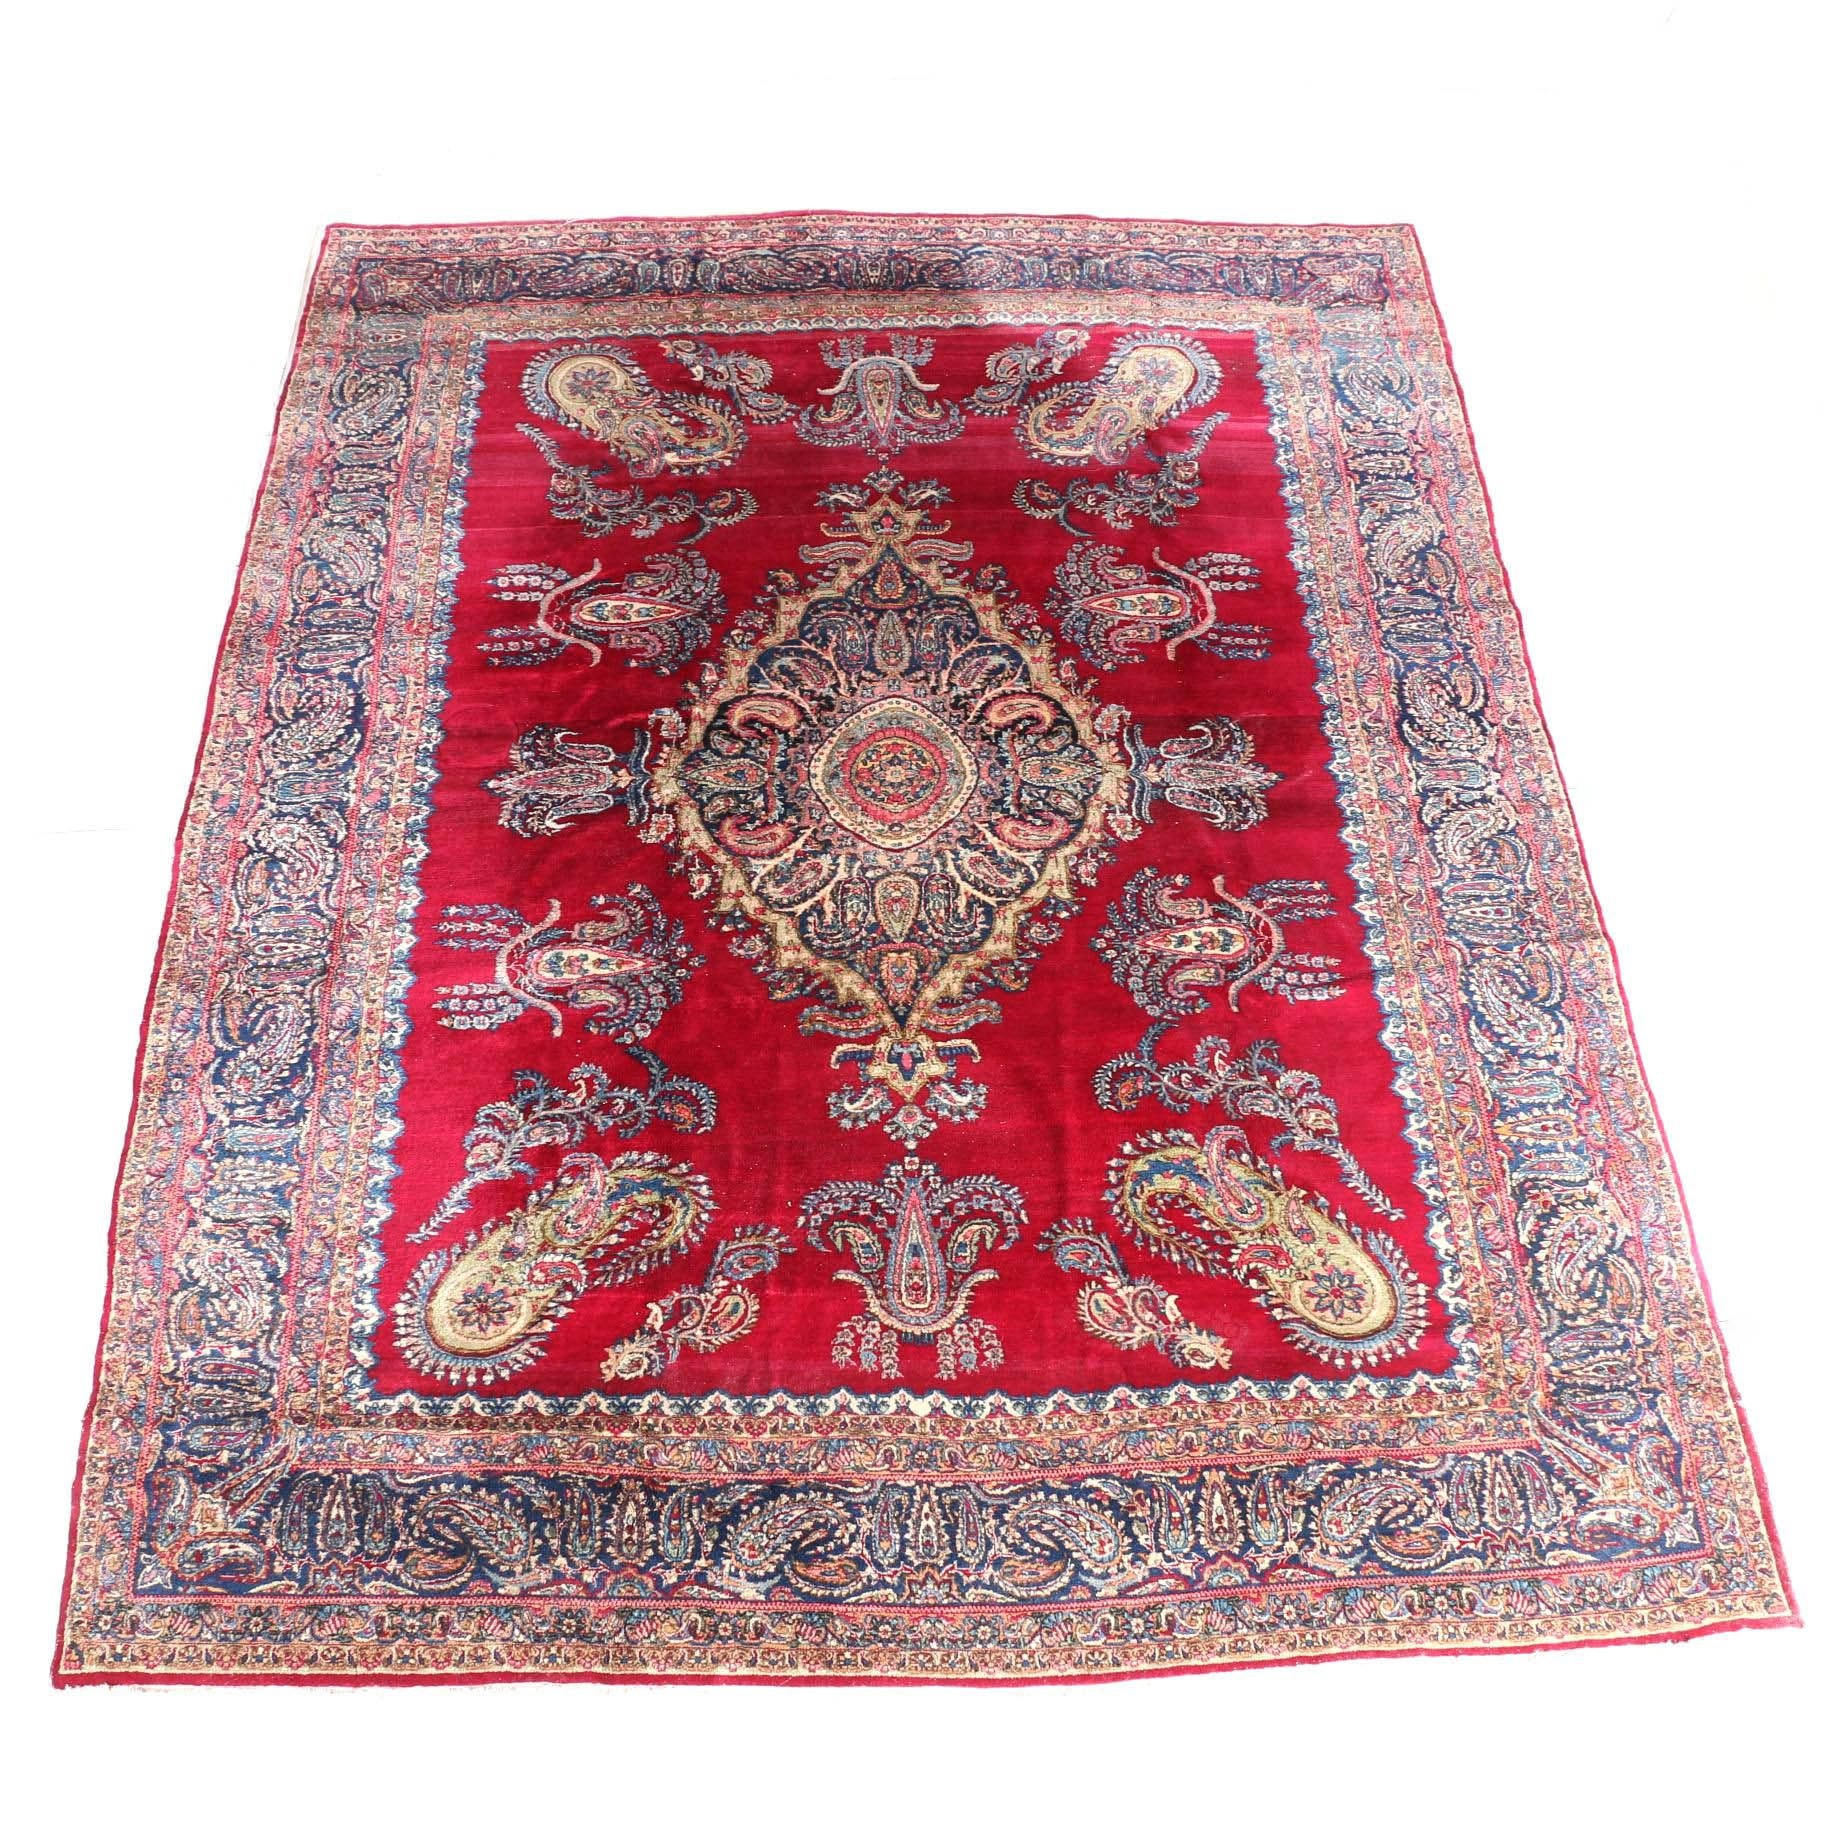 Excellent Hand-Knotted Antique Kerman Area Rug Circa 1920